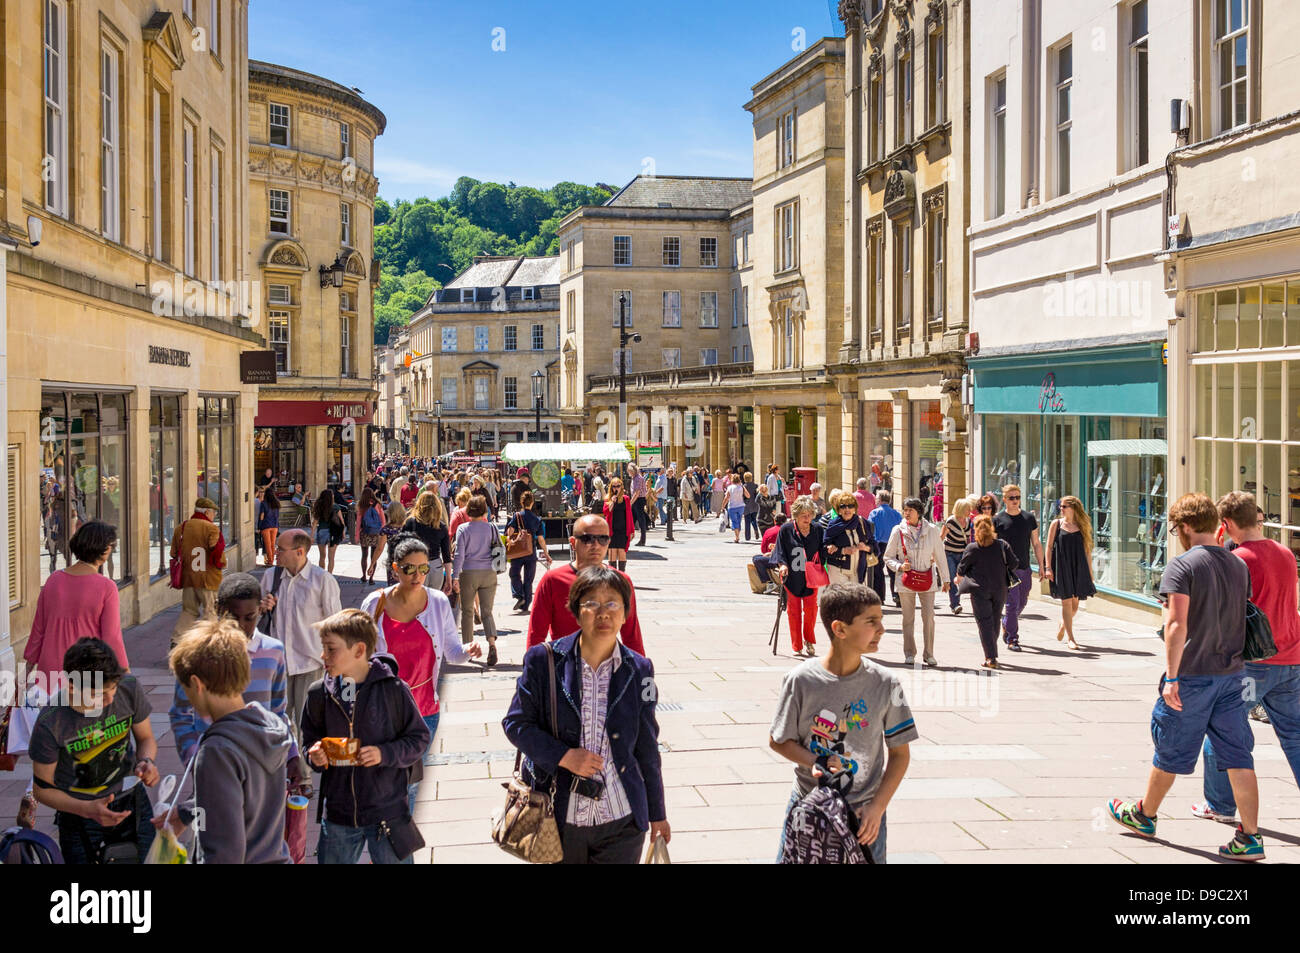 High street UK - Shoppers and shops in the high street in the city centre of Bath, Somerset, UK in summer - Stock Image